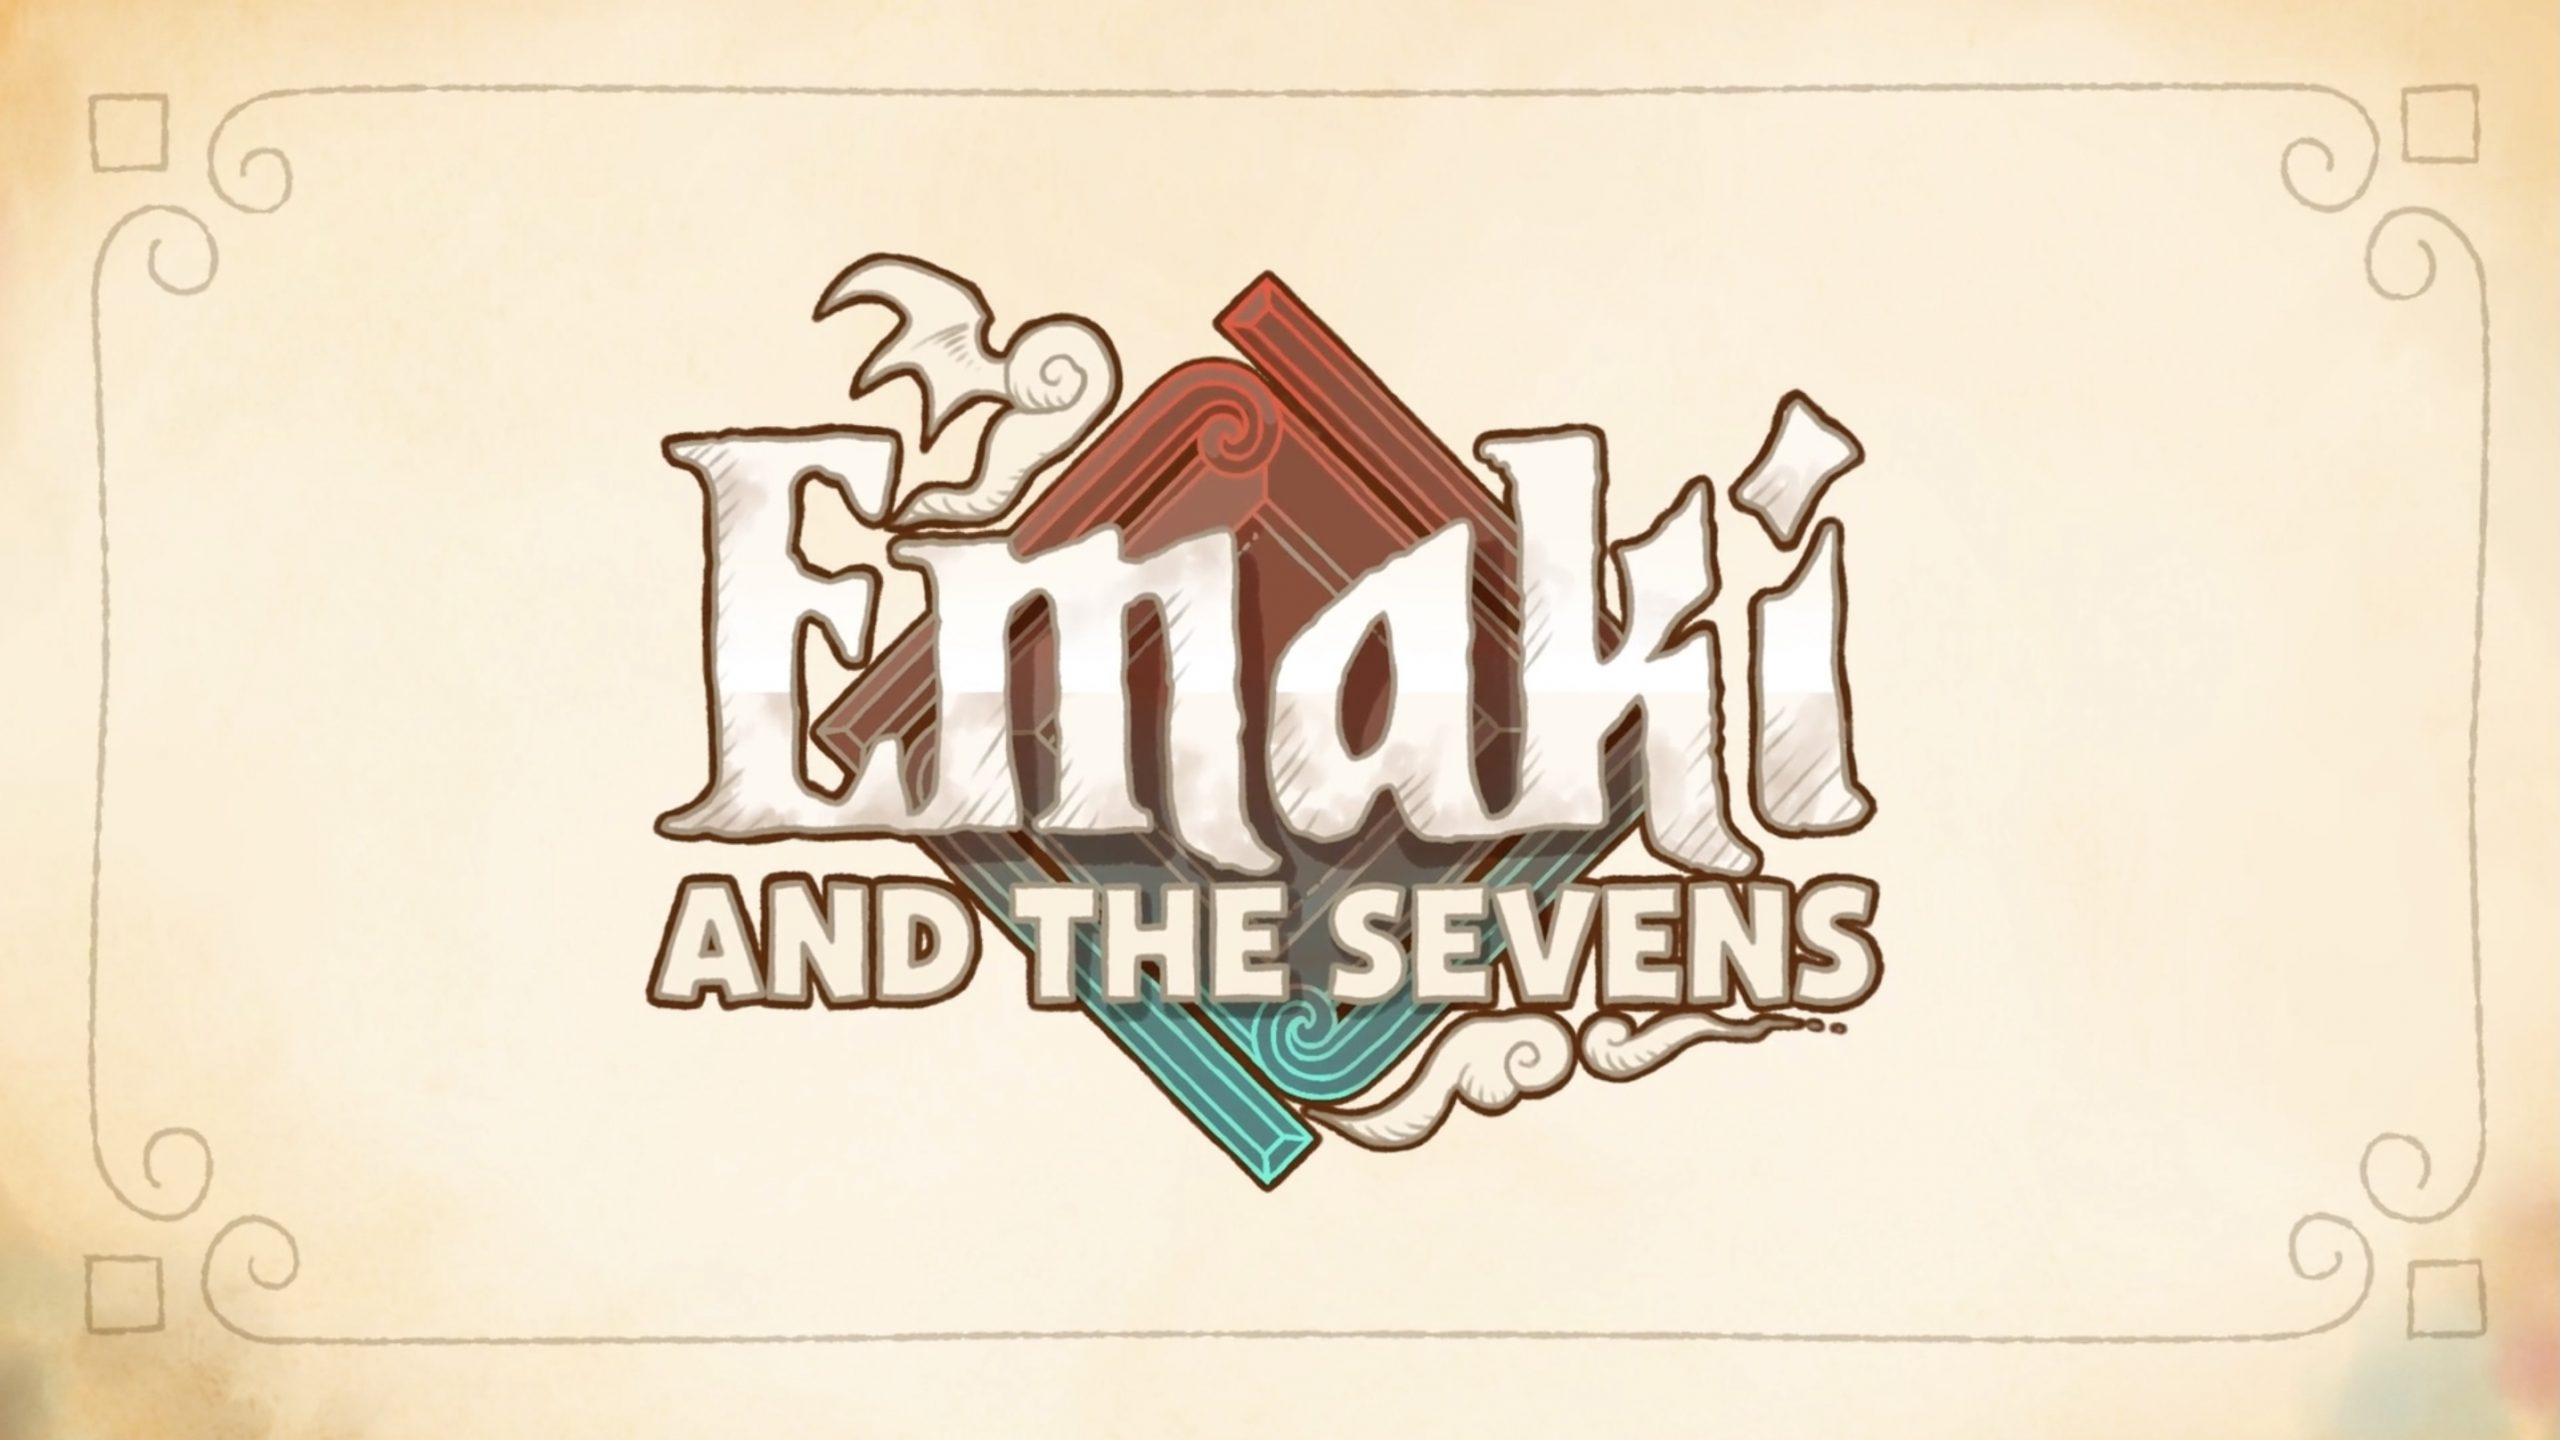 Emaki and the Sevens